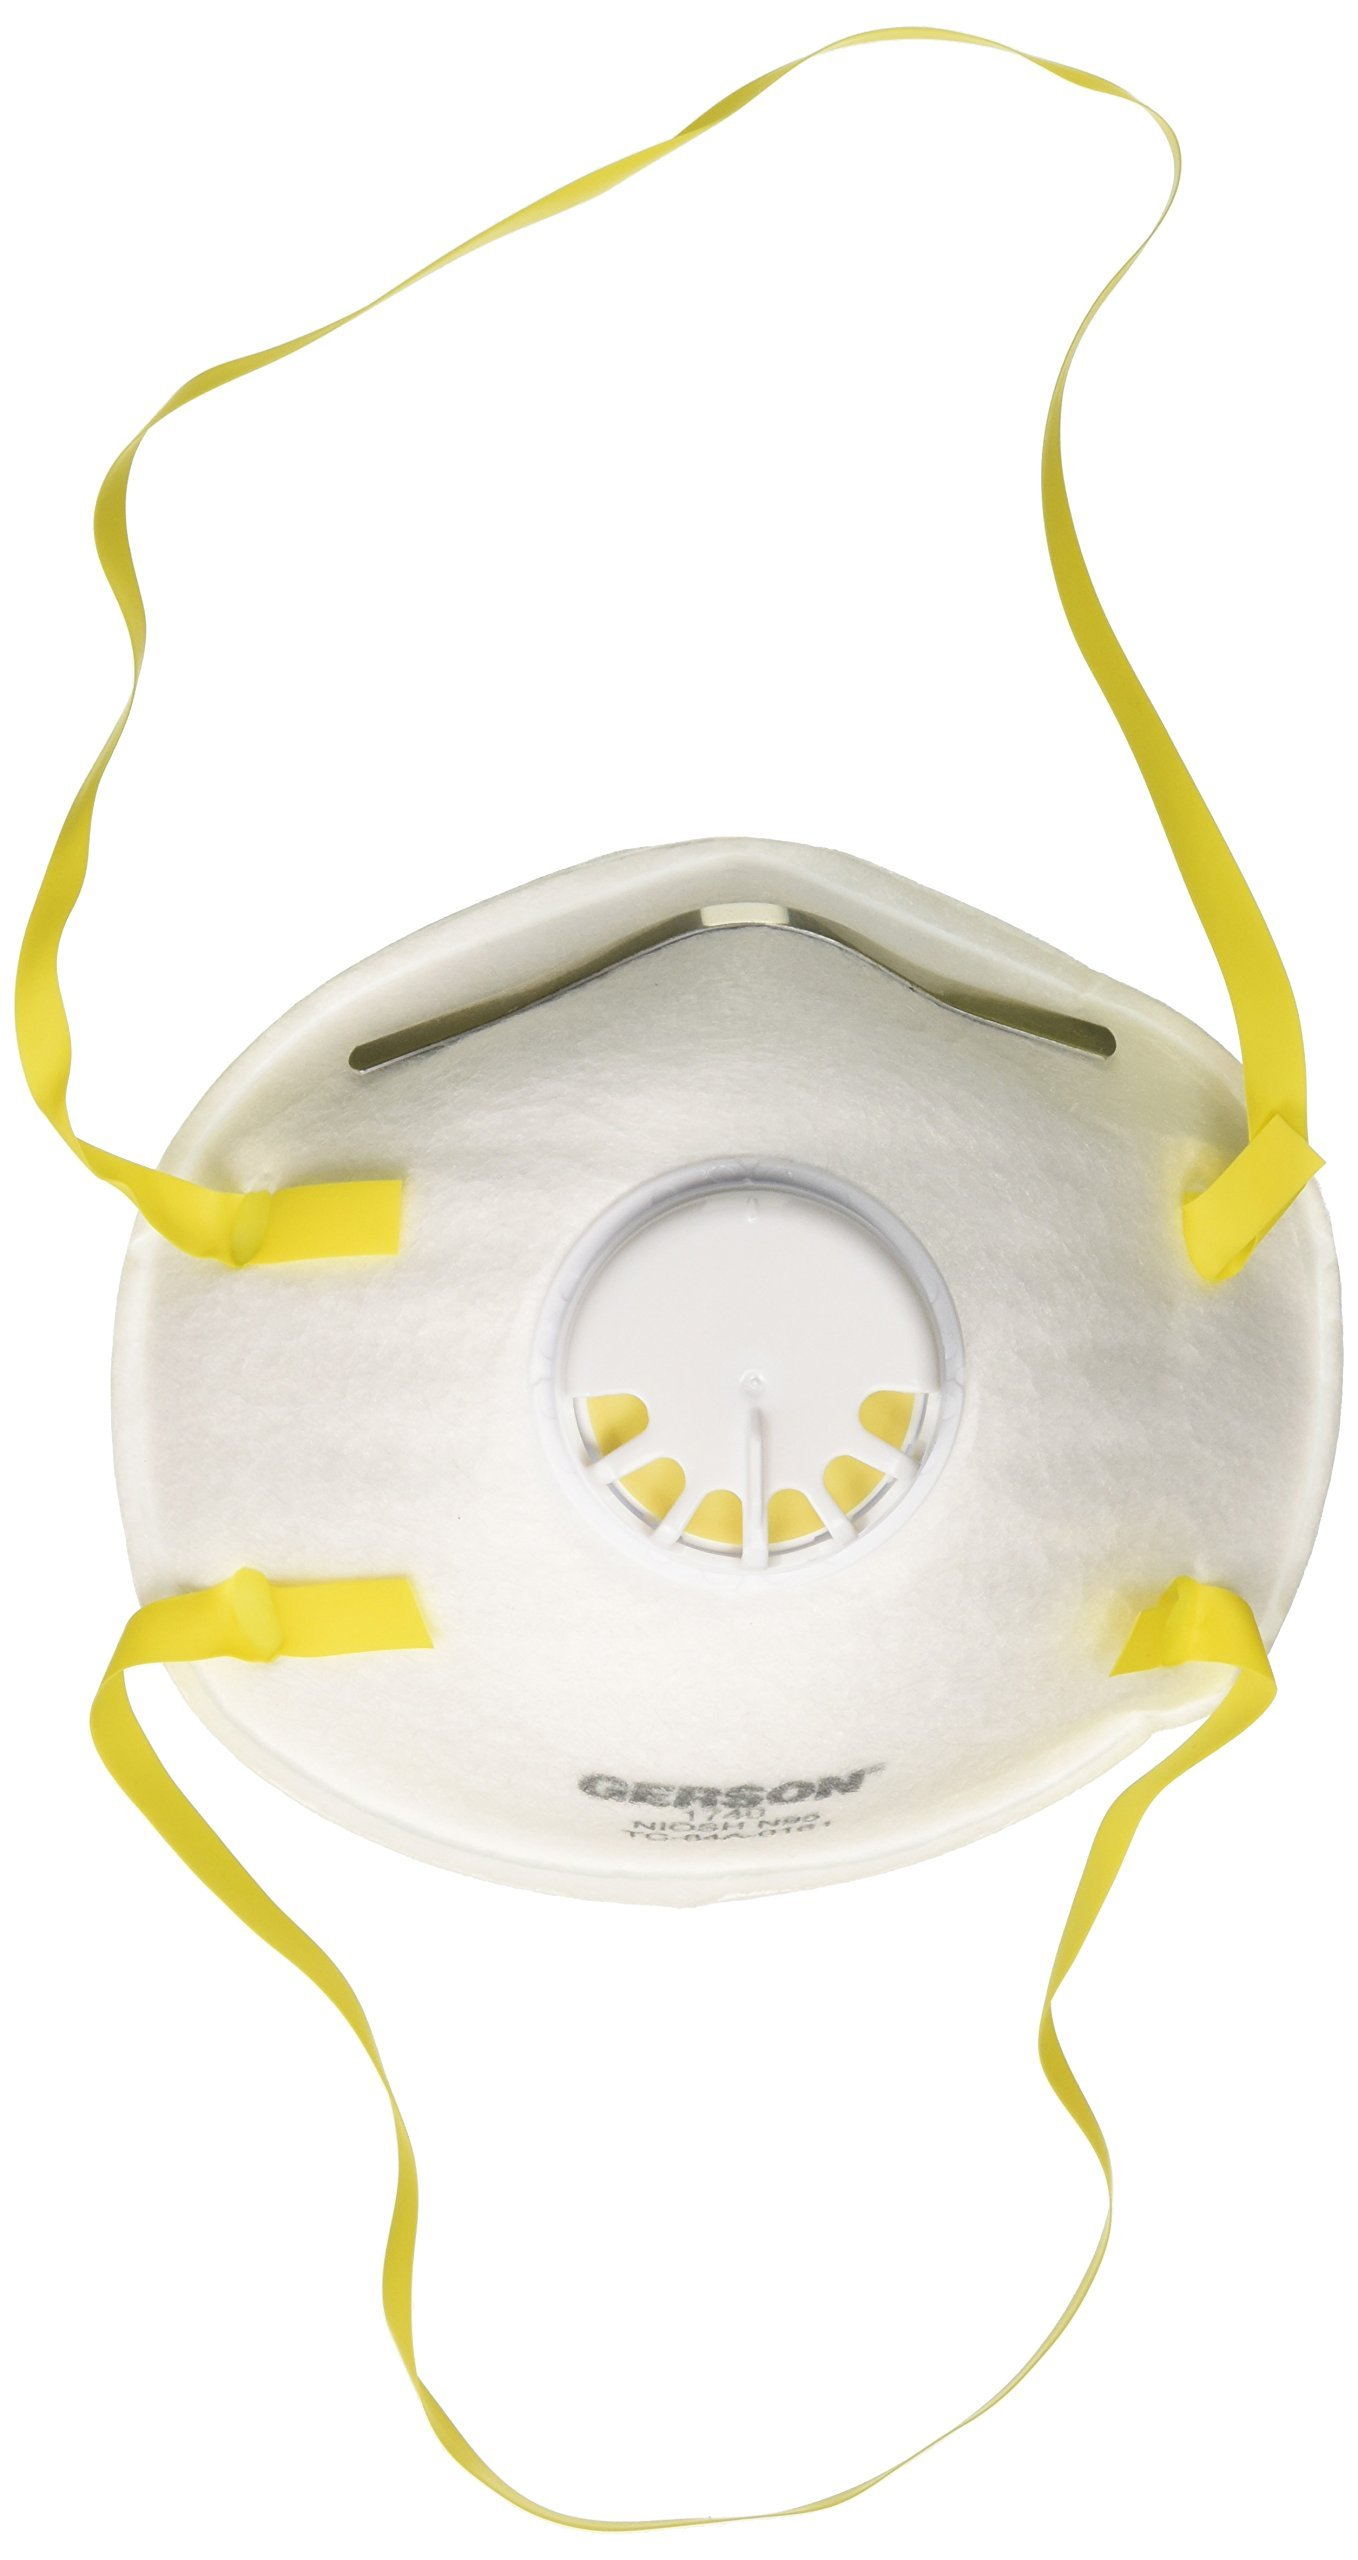 Gerson N95 Respirators with Exhalation Valve, Pack of 10, White